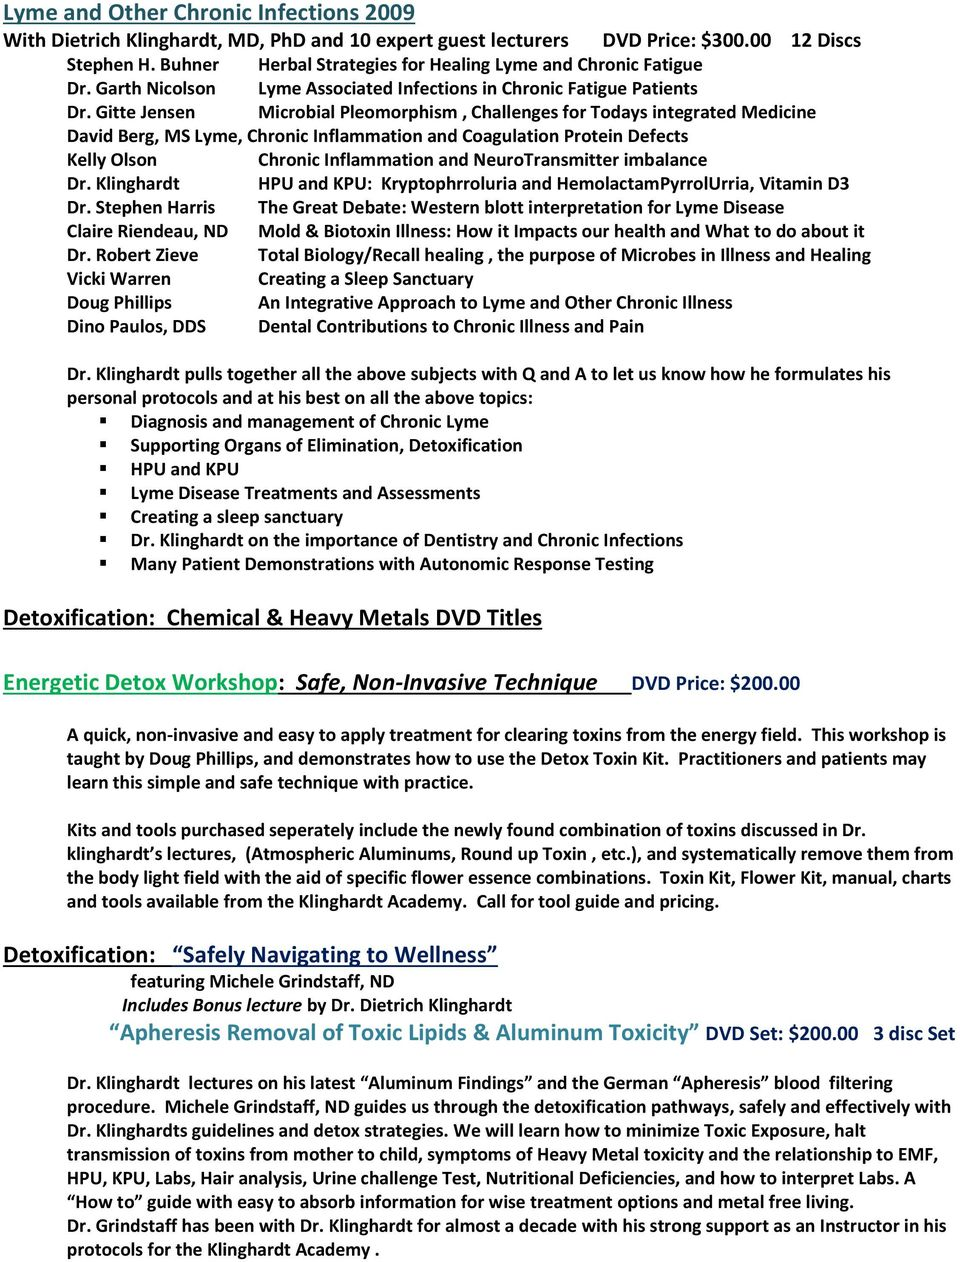 DVD Catalog of Recommended Trainings - PDF